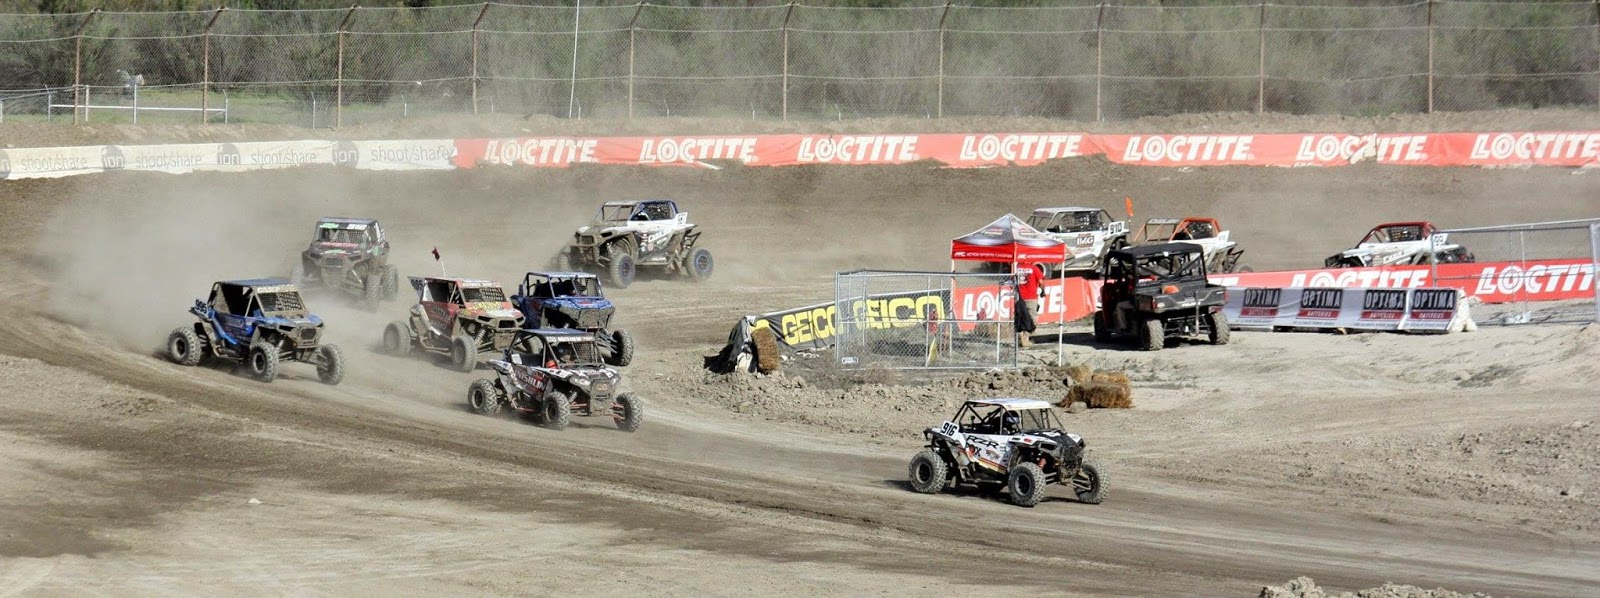 Lucas Oil Off-Road Regional Series